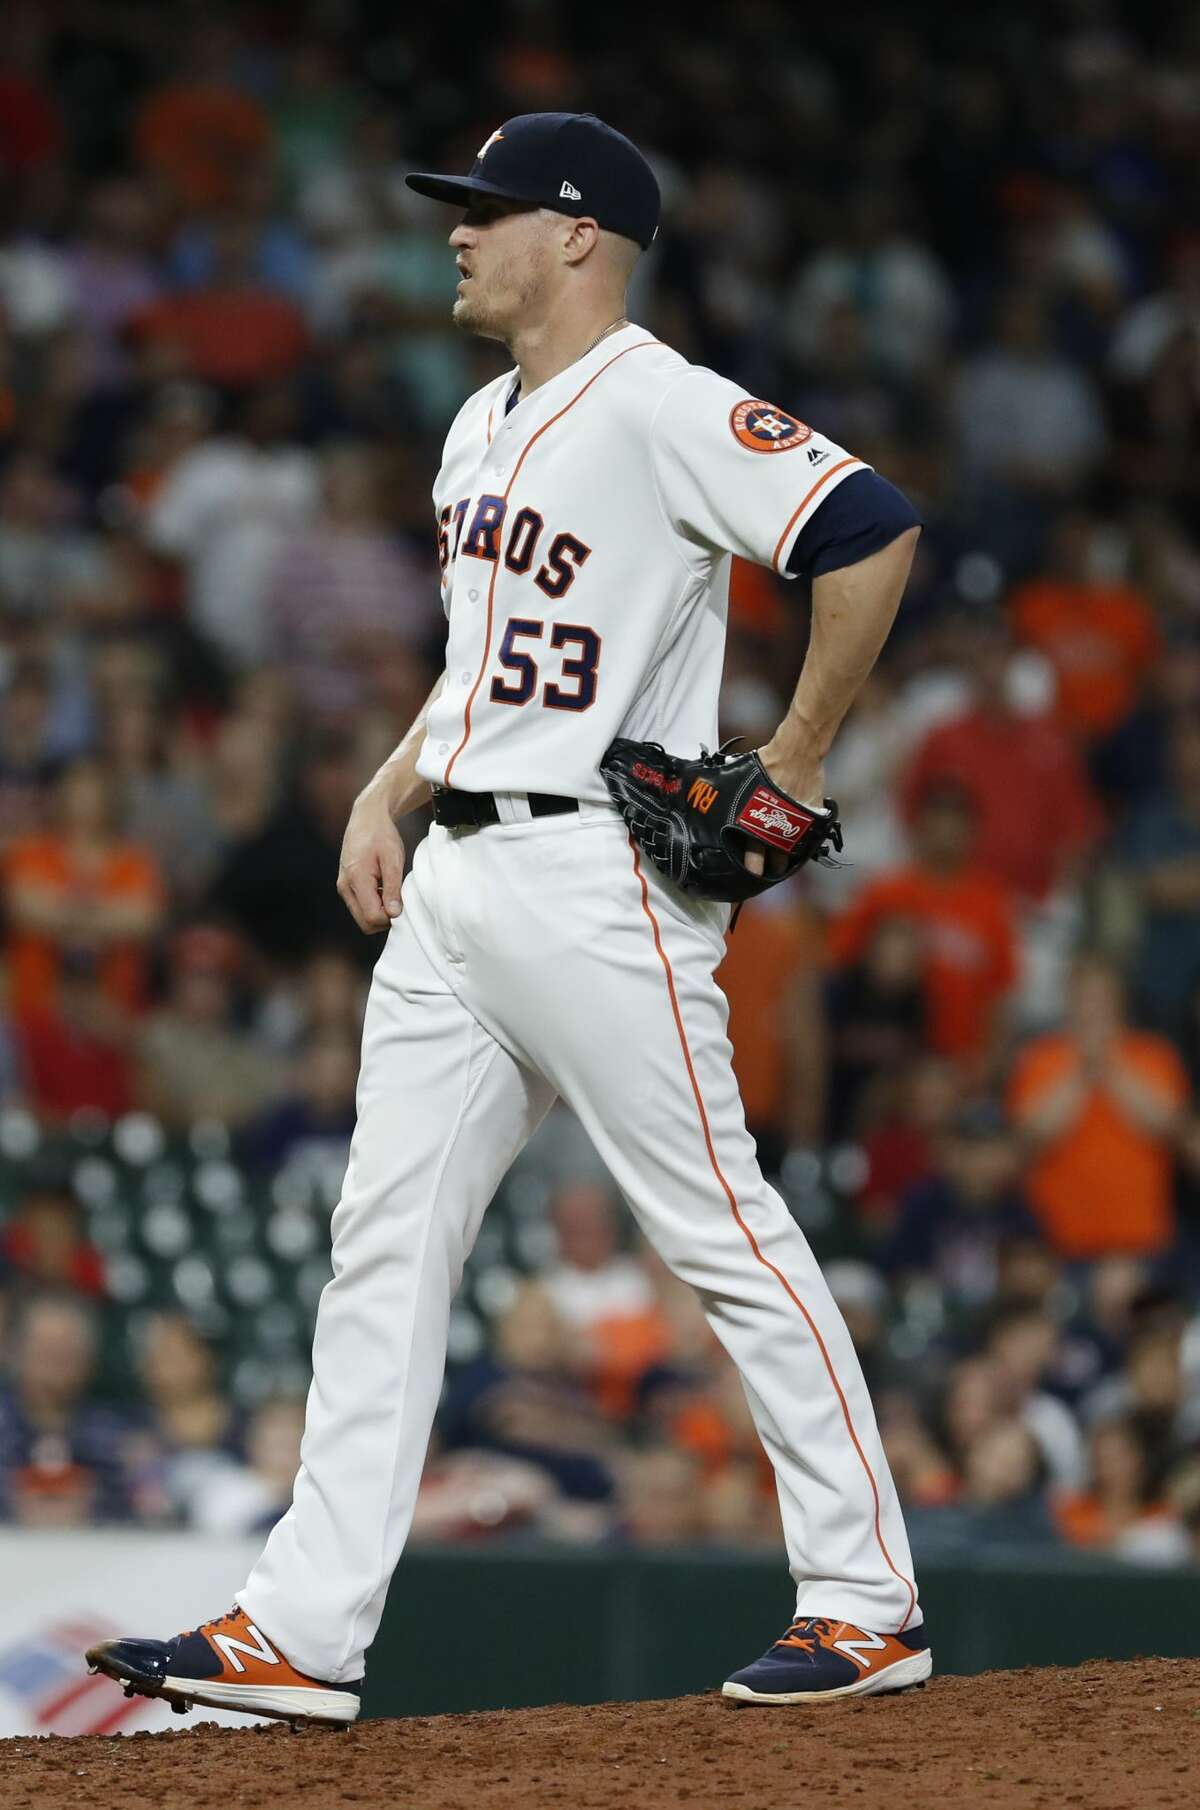 Houston Astros relief pitcher Ken Giles (53) pitches during the ninth inning of an MLB baseball game at Minute Maid Park, Thursday, May 31, 2018, in Houston. ( Karen Warren / Houston Chronicle )